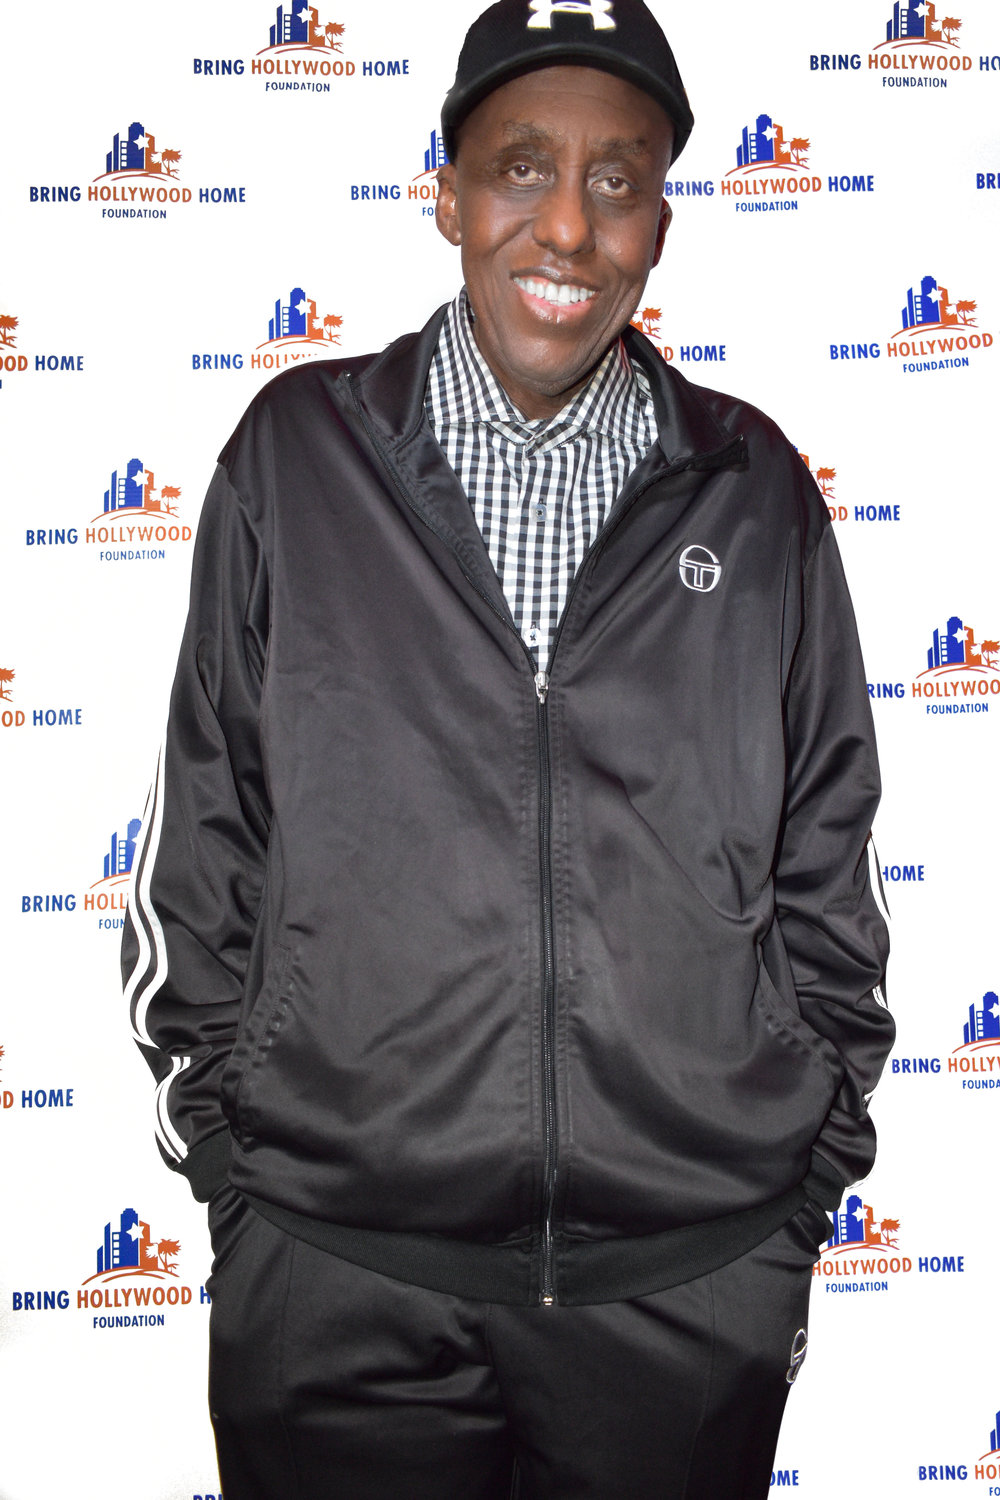 Film Director Bill Duke shows his relentless leadership and support as part of the Bring Hollywood Home Board of Directors